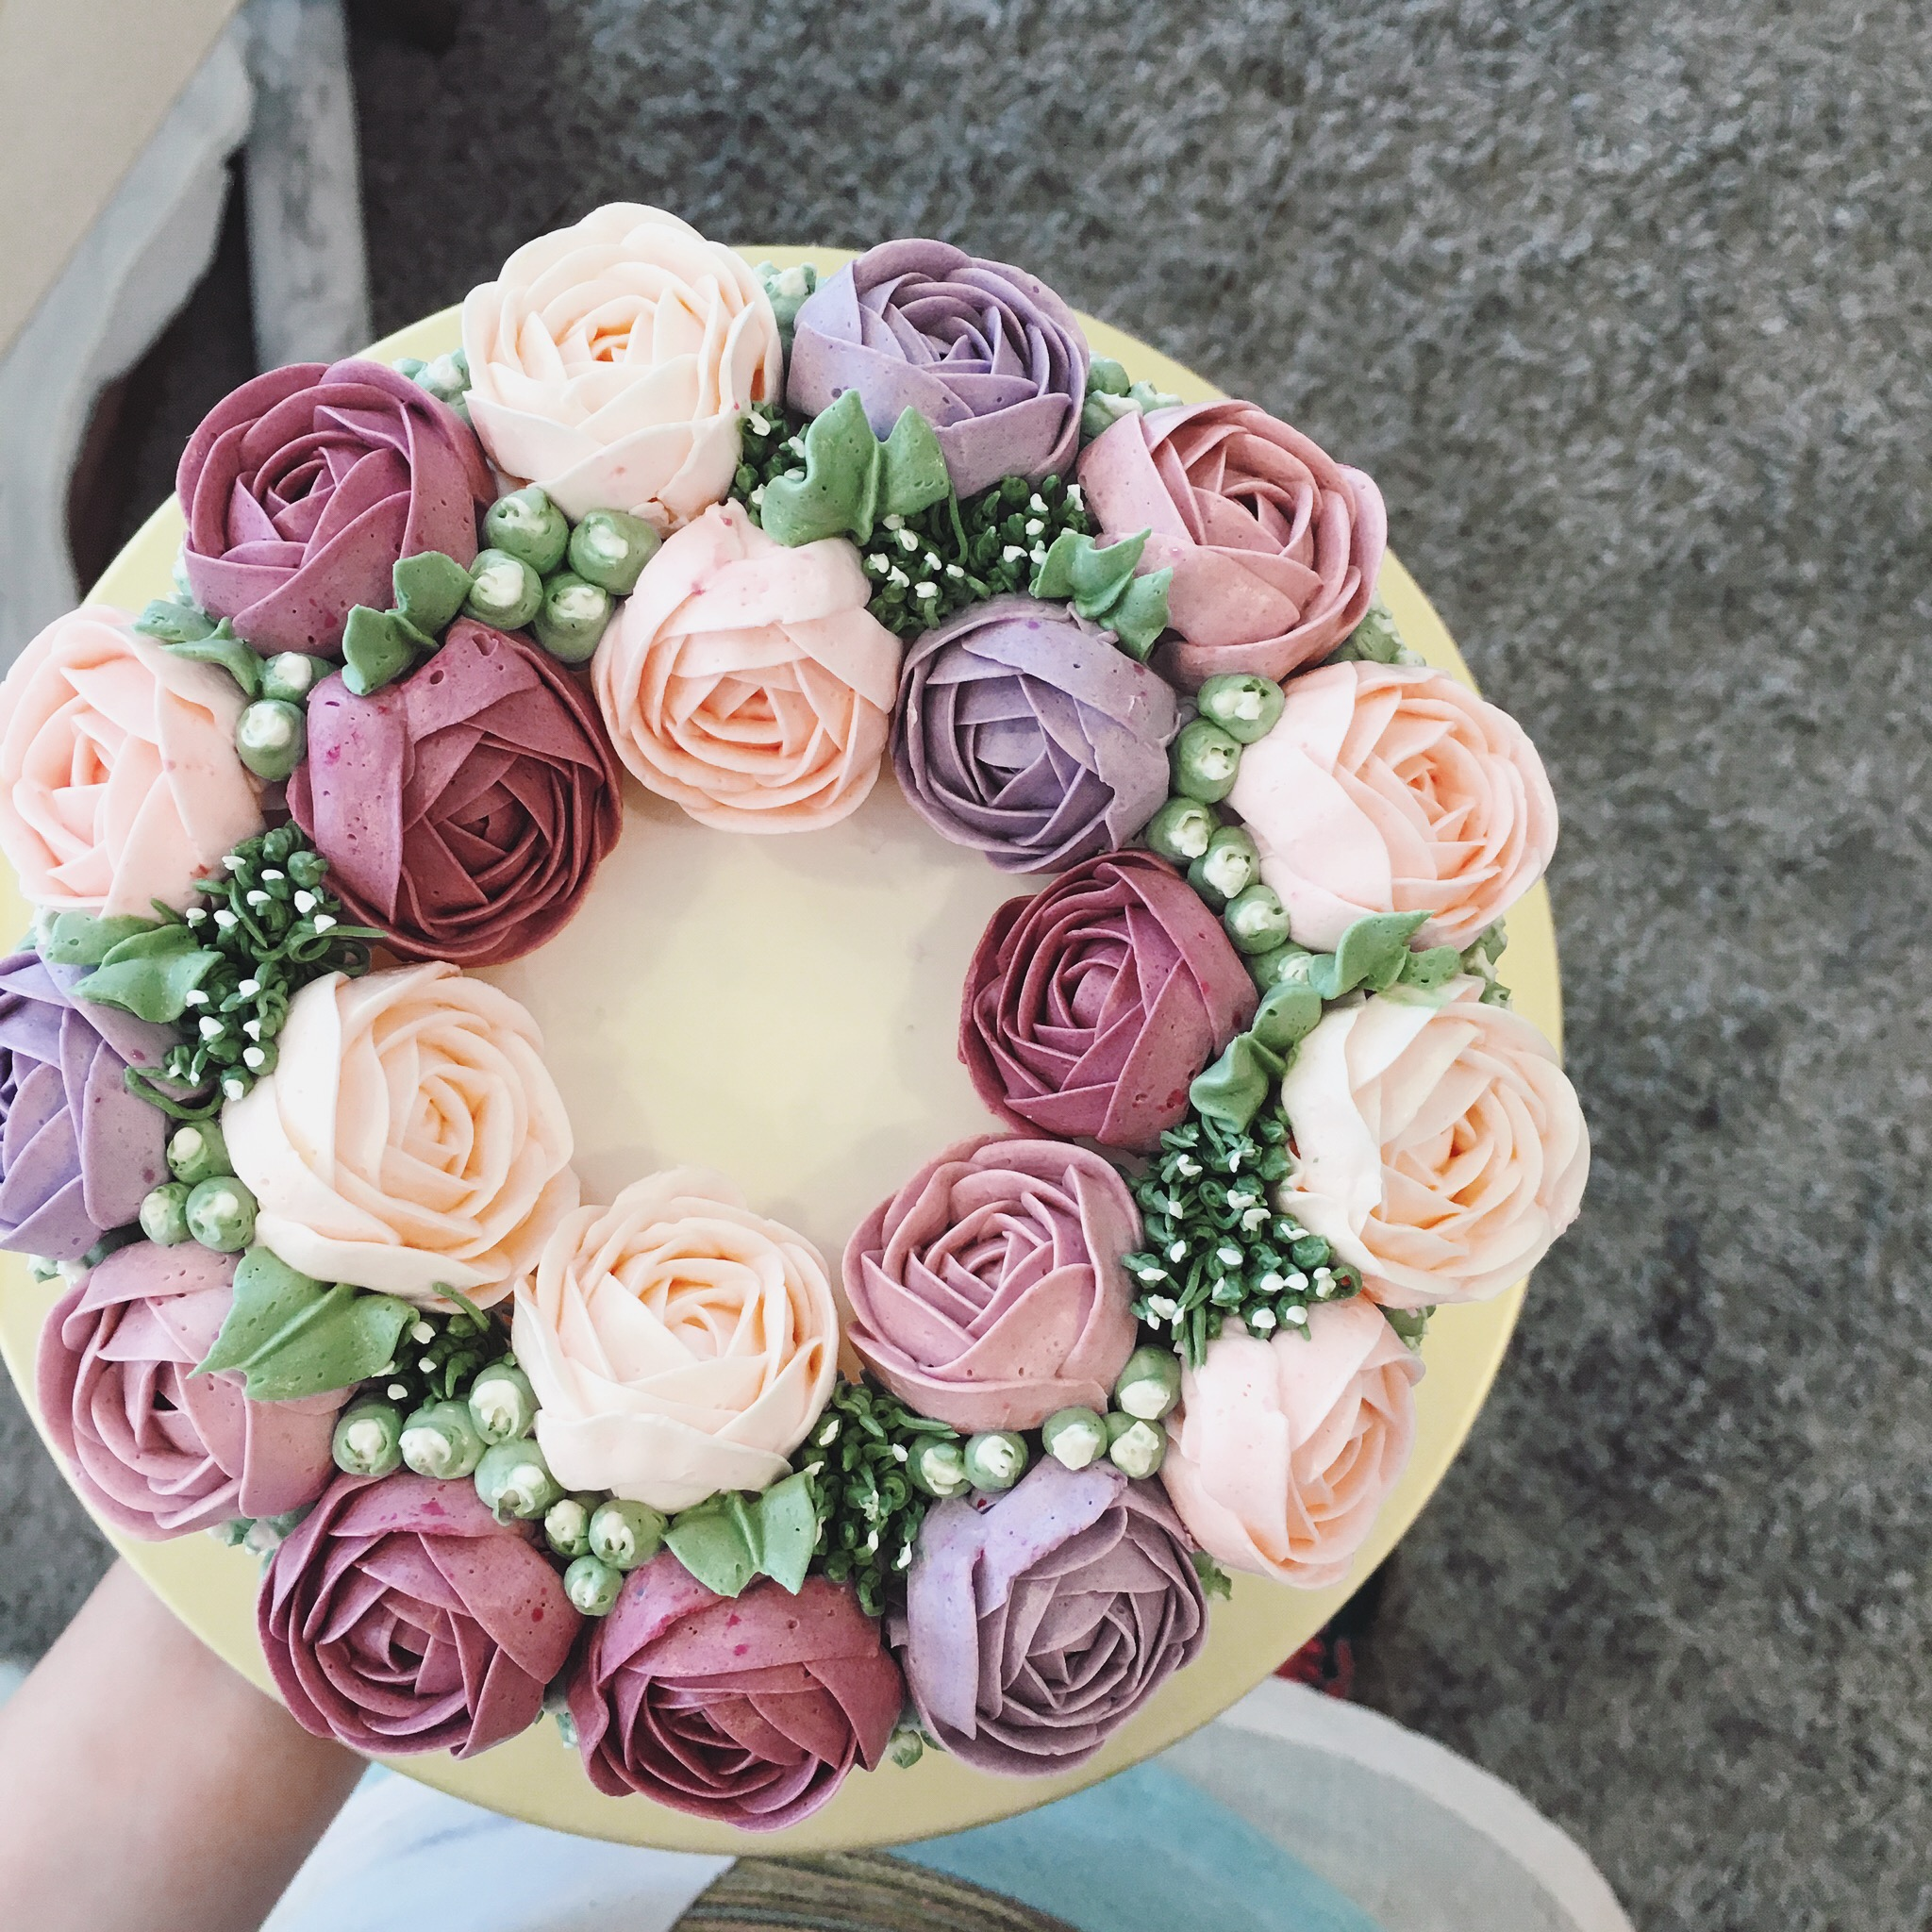 3D HANDPIPED ROSES